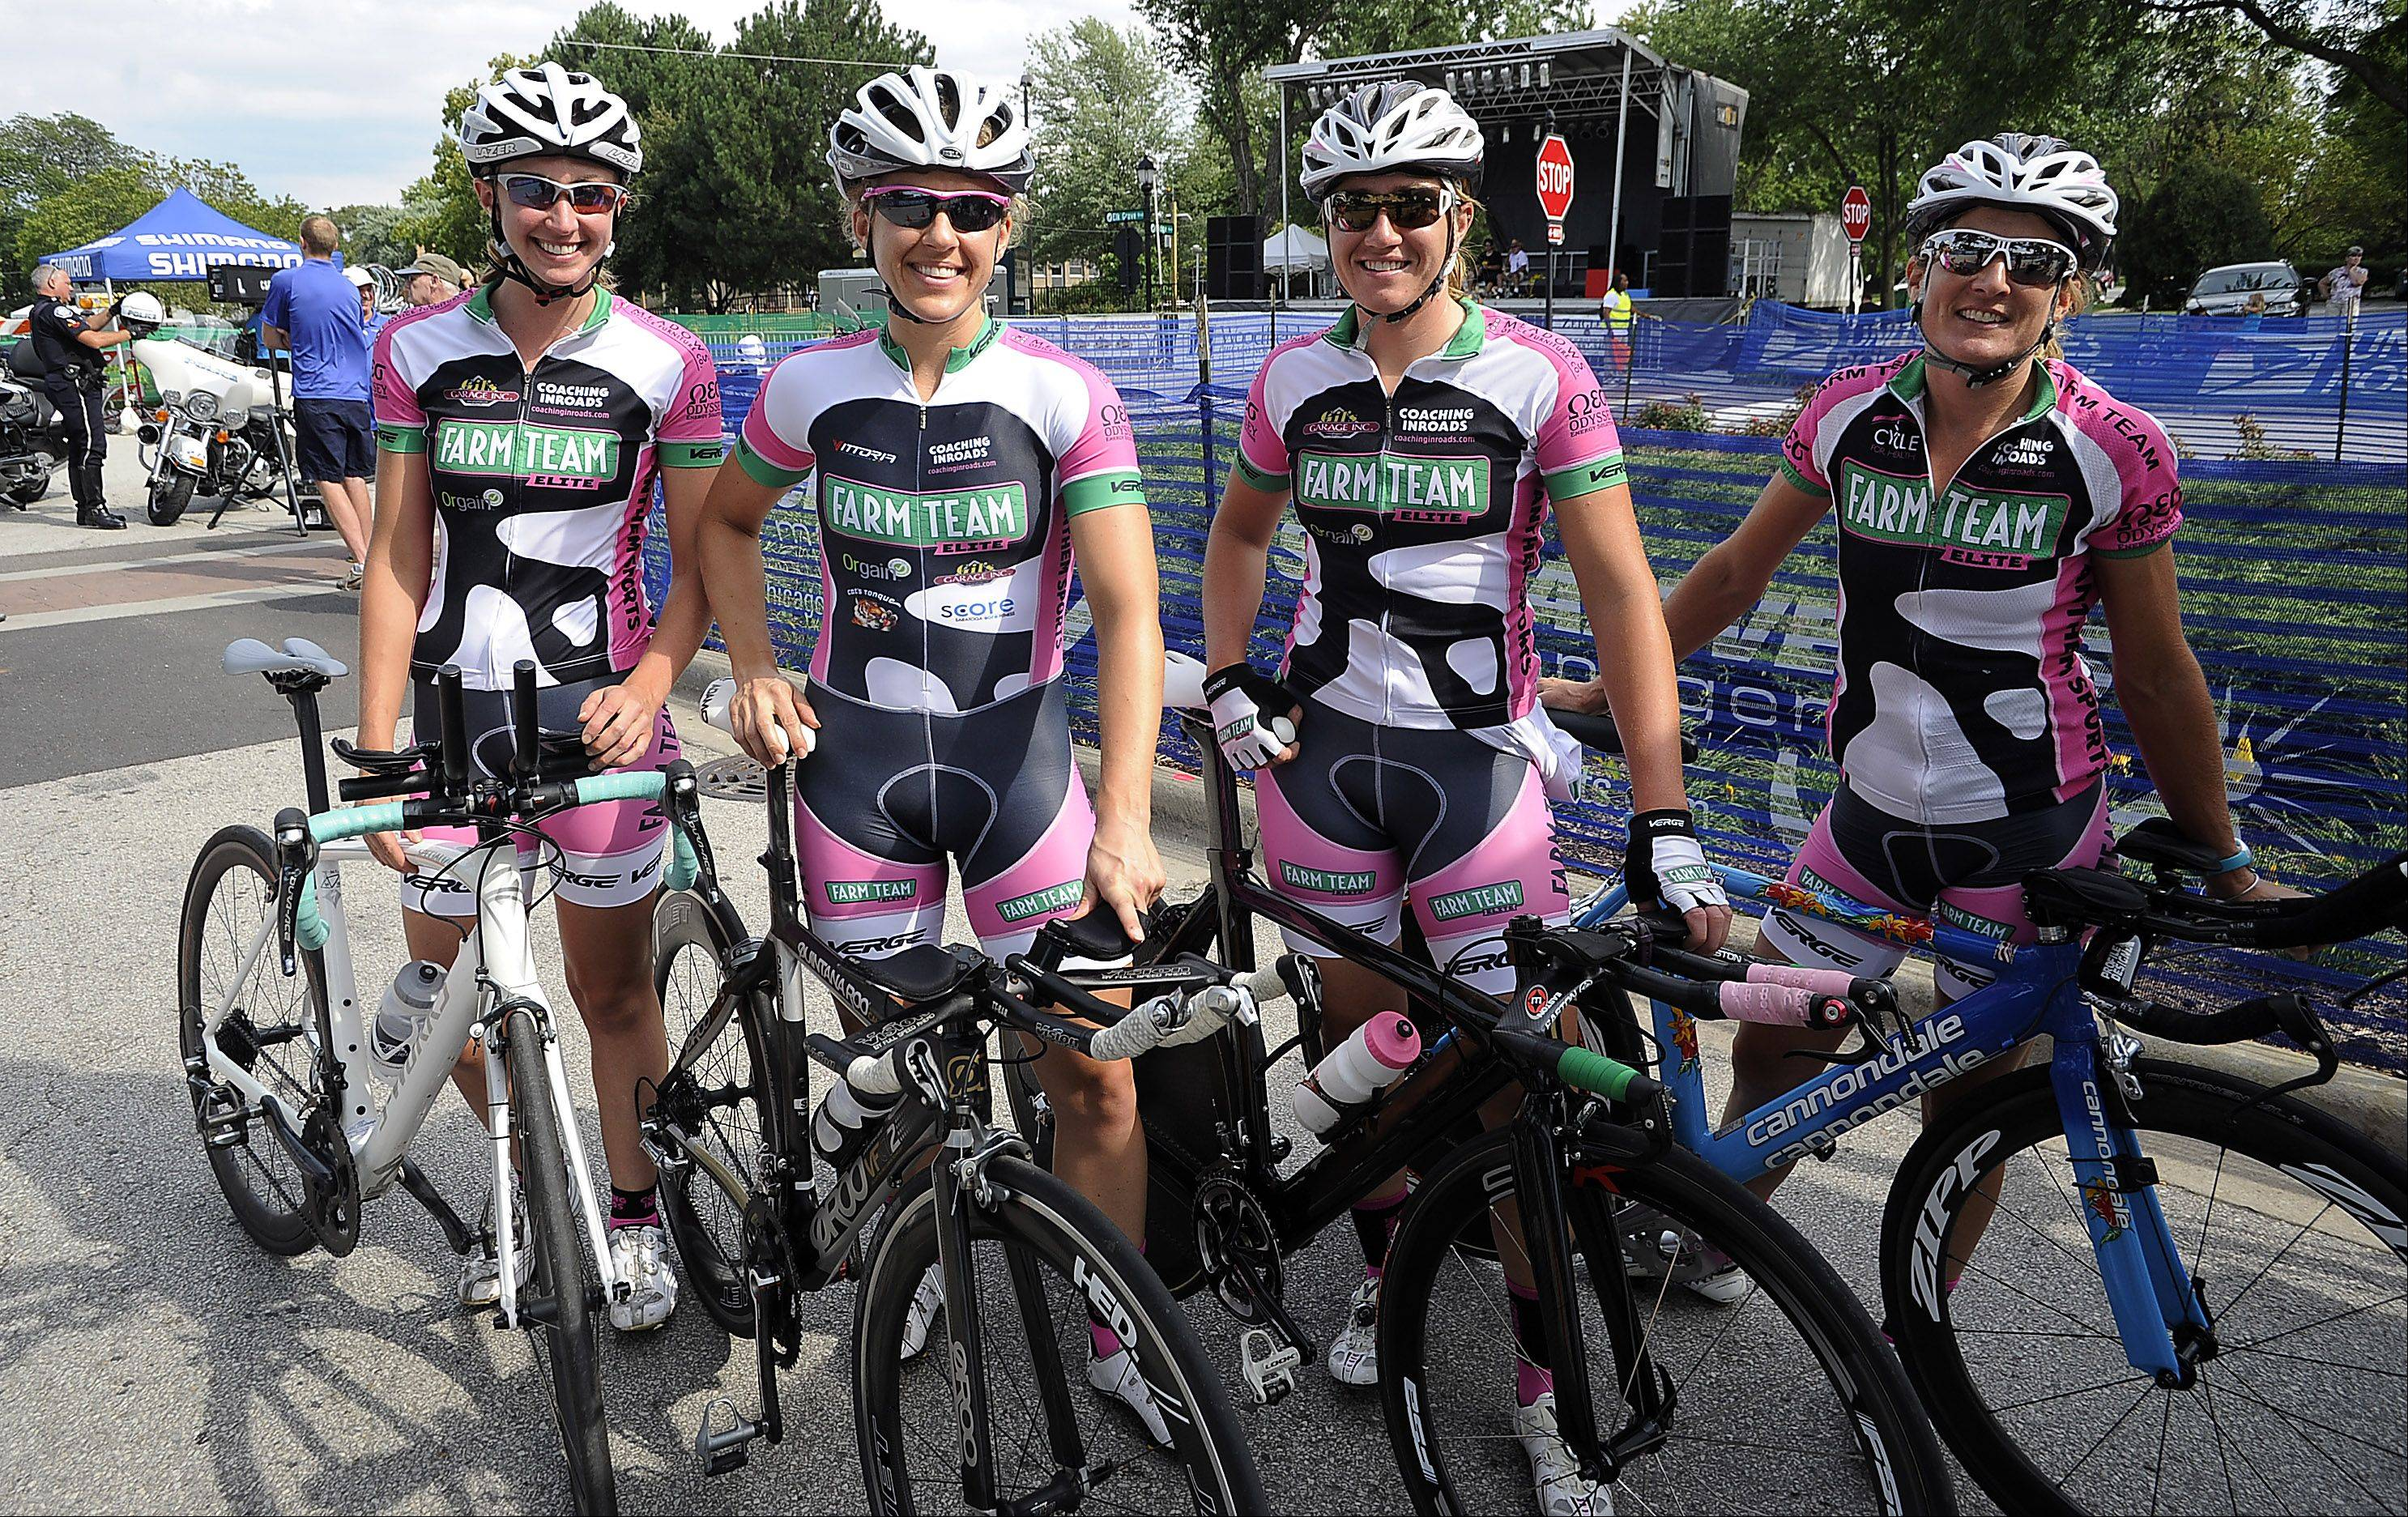 Kate Lysakowski, 29, of Boston, Raquel Miller, 31, of New York City with Jenny Ives, 28, also of New York, and Beth Ruiz, 39, of New York represent team Farm Team Elite in the 2013 Alexian Brothers Tour of Elk Grove Mayor Set Charity Race time trials on day one of the three-day event.